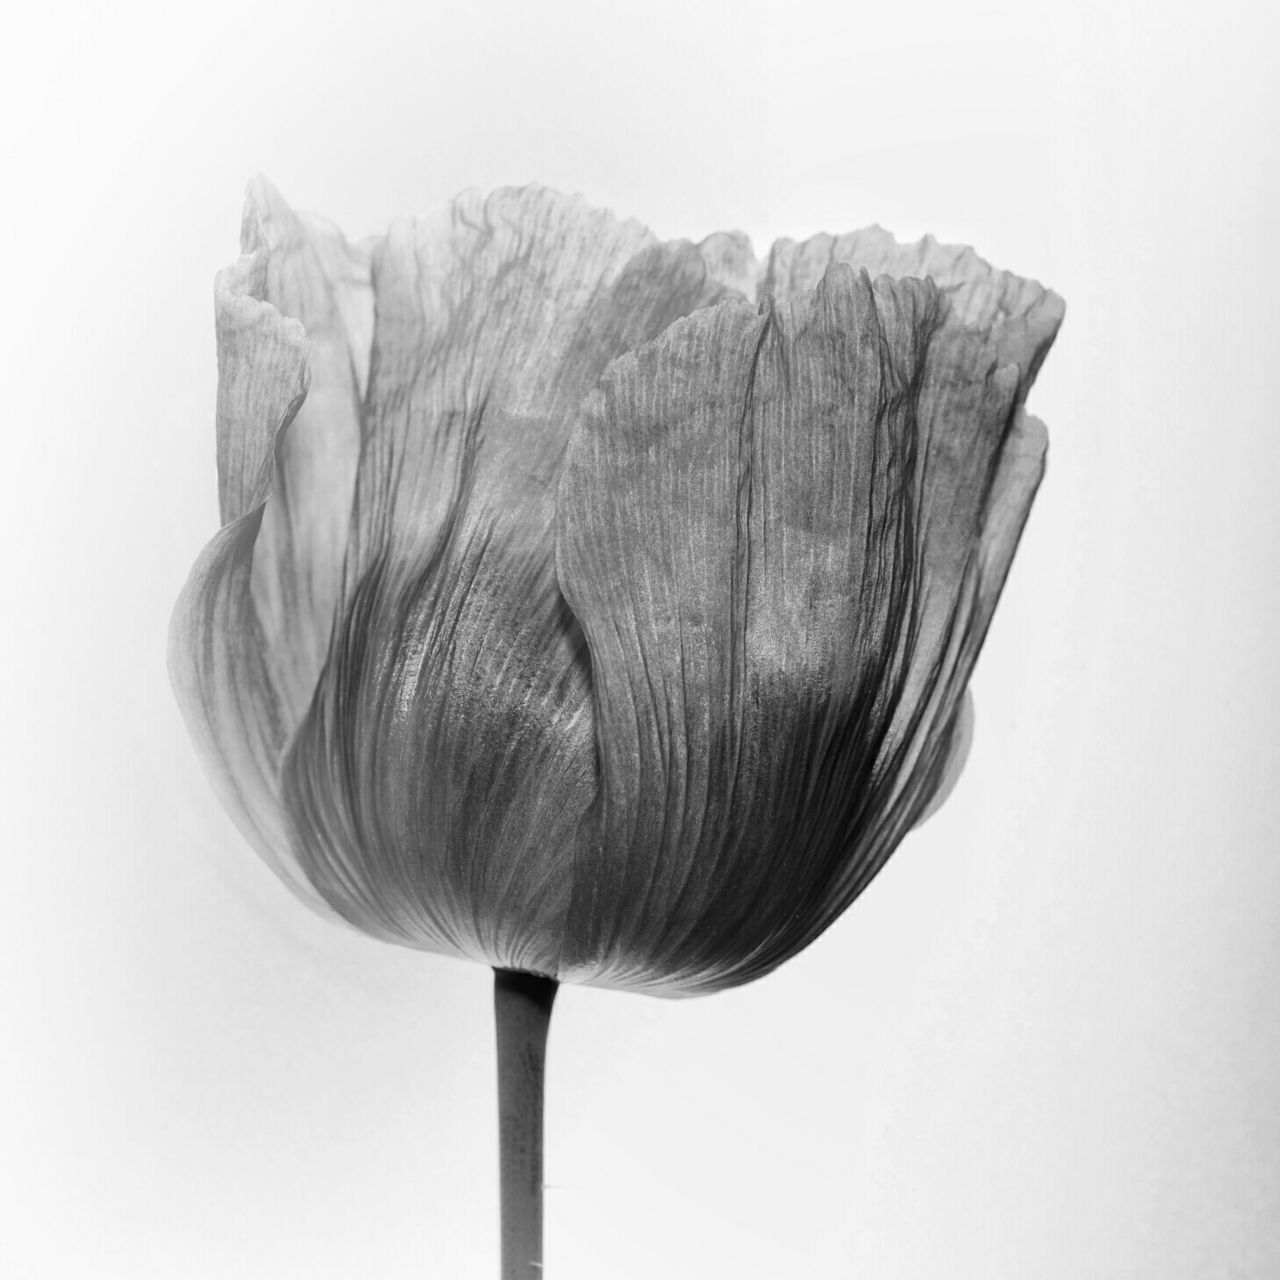 Poppy Blackandwhite Macro Flowers Getting Inspired Taking Photos Monochrome Just White EyeEm Best Shots - Flowers B&w